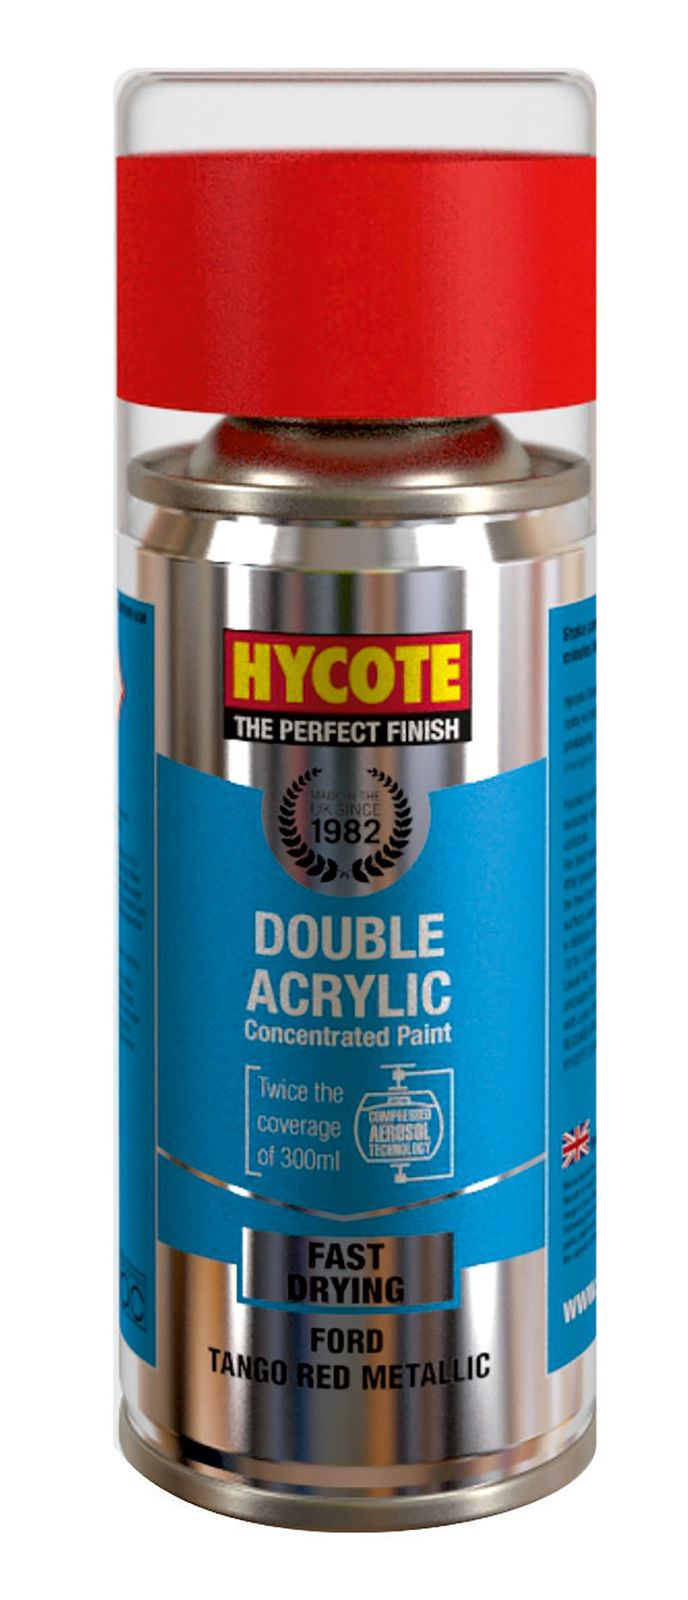 Hycote Gloss White Touch Up Paint - 150ml